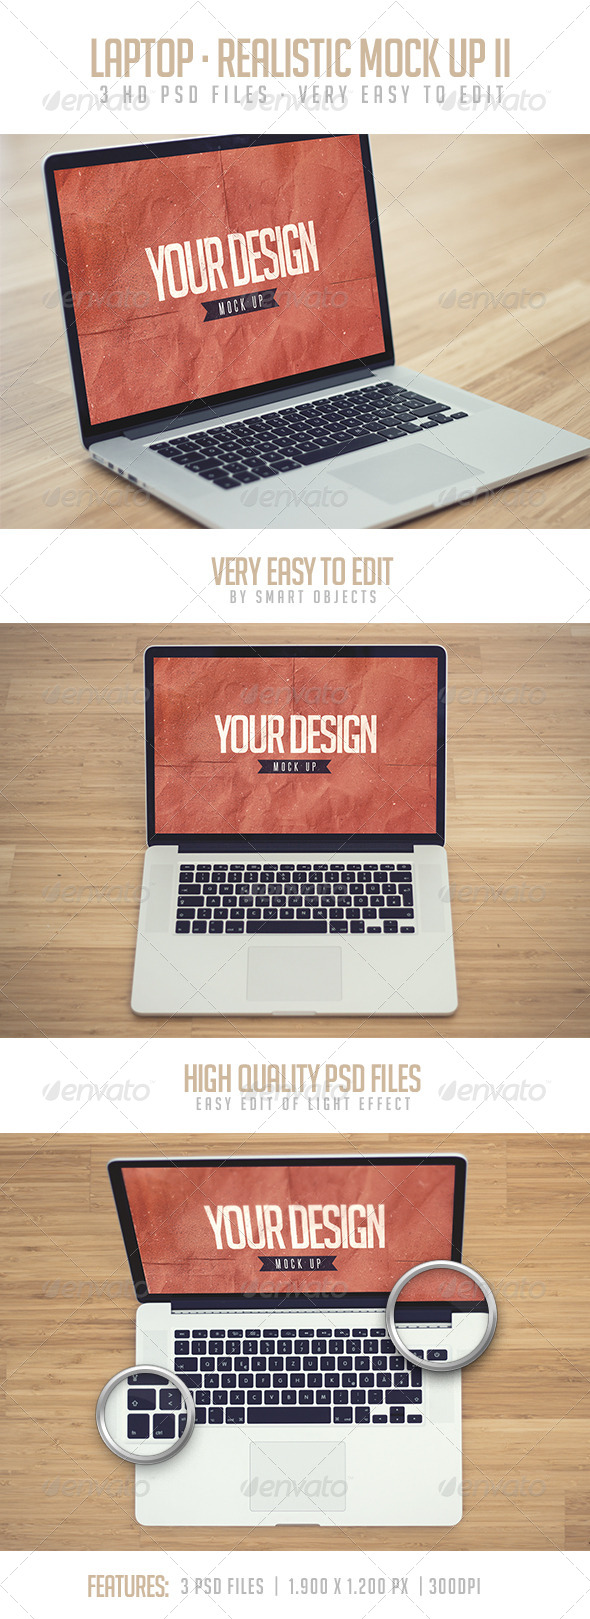 GraphicRiver Laptop Realistic Mock Up II 8076590